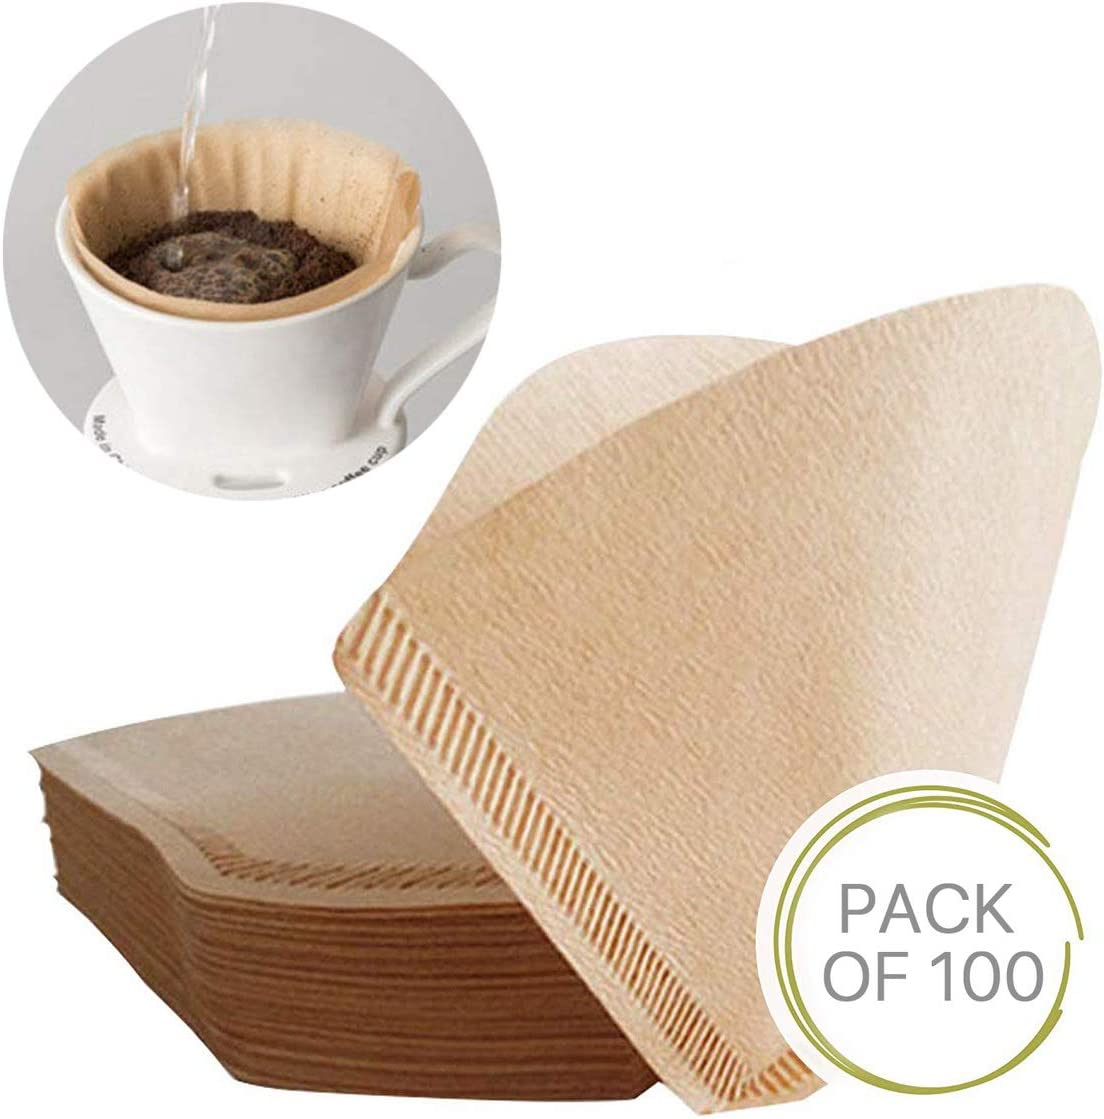 100Pcs Size 2 Special 102 Coffee Filter Paper Disposable Natural Unbleached Original Wooden Drip Paper Suitable für Coffee Machines und Coffee Cones